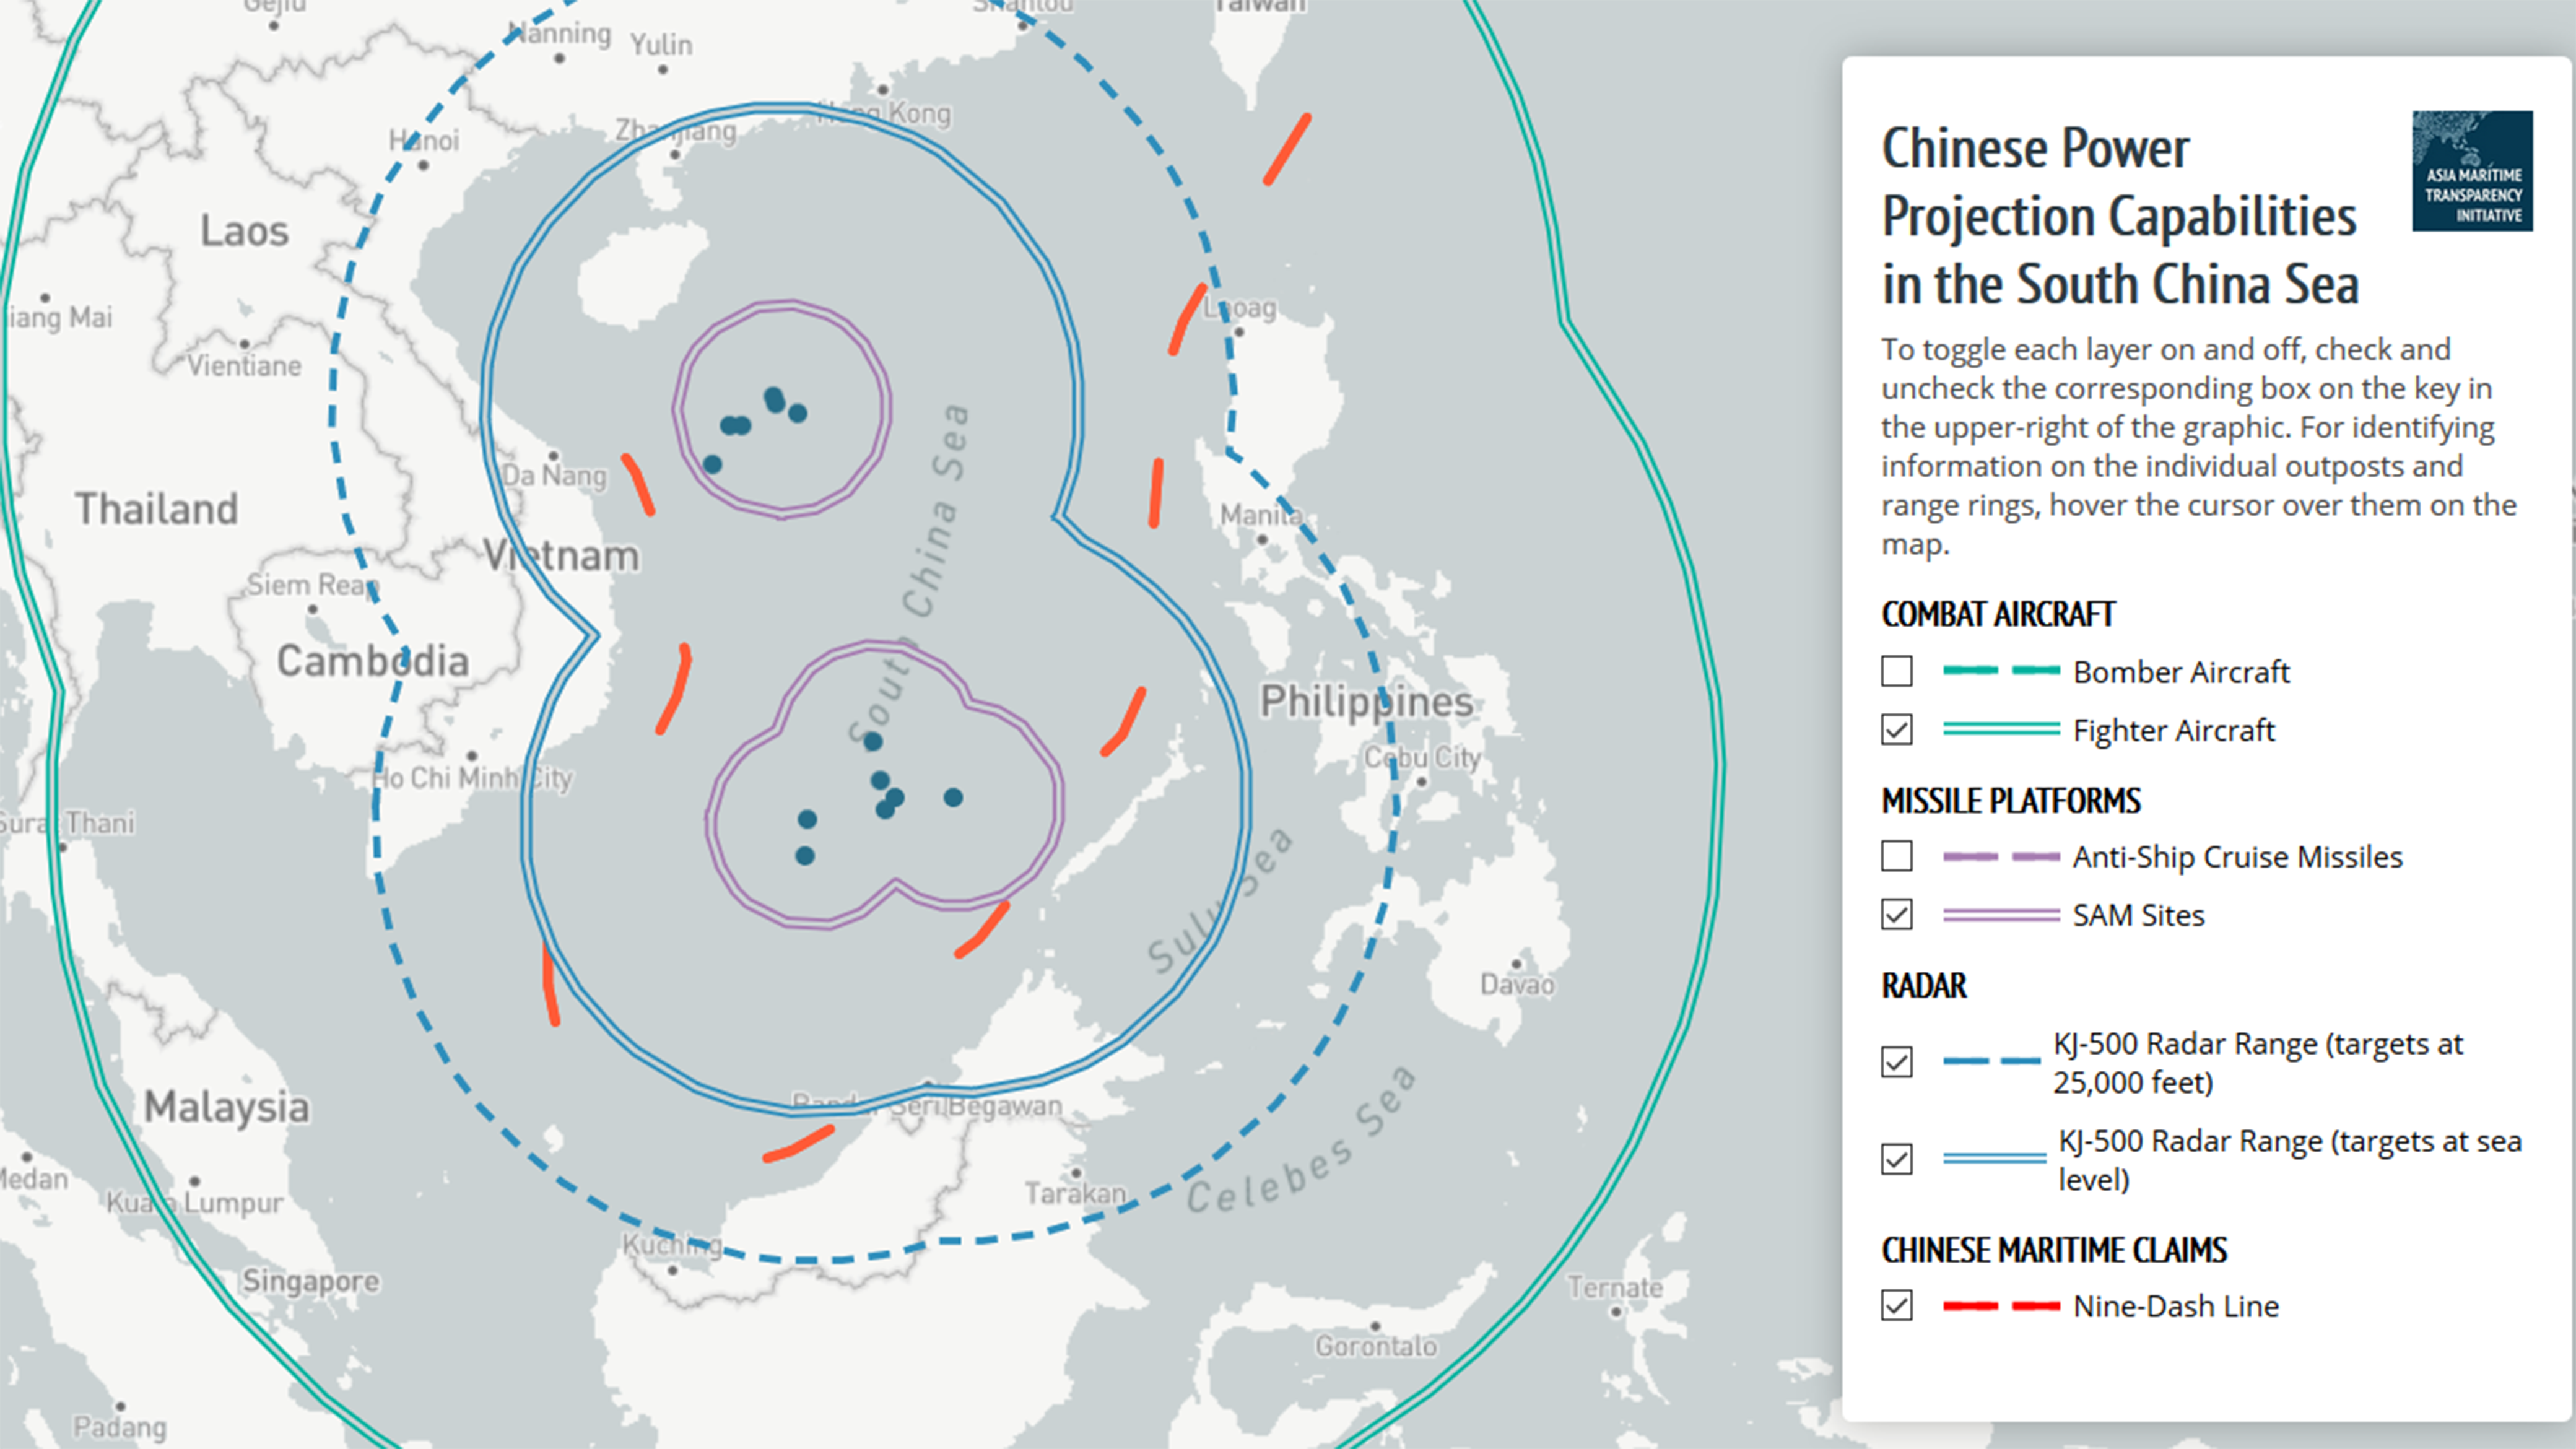 https://amti.csis.org/chinese-power-projection/